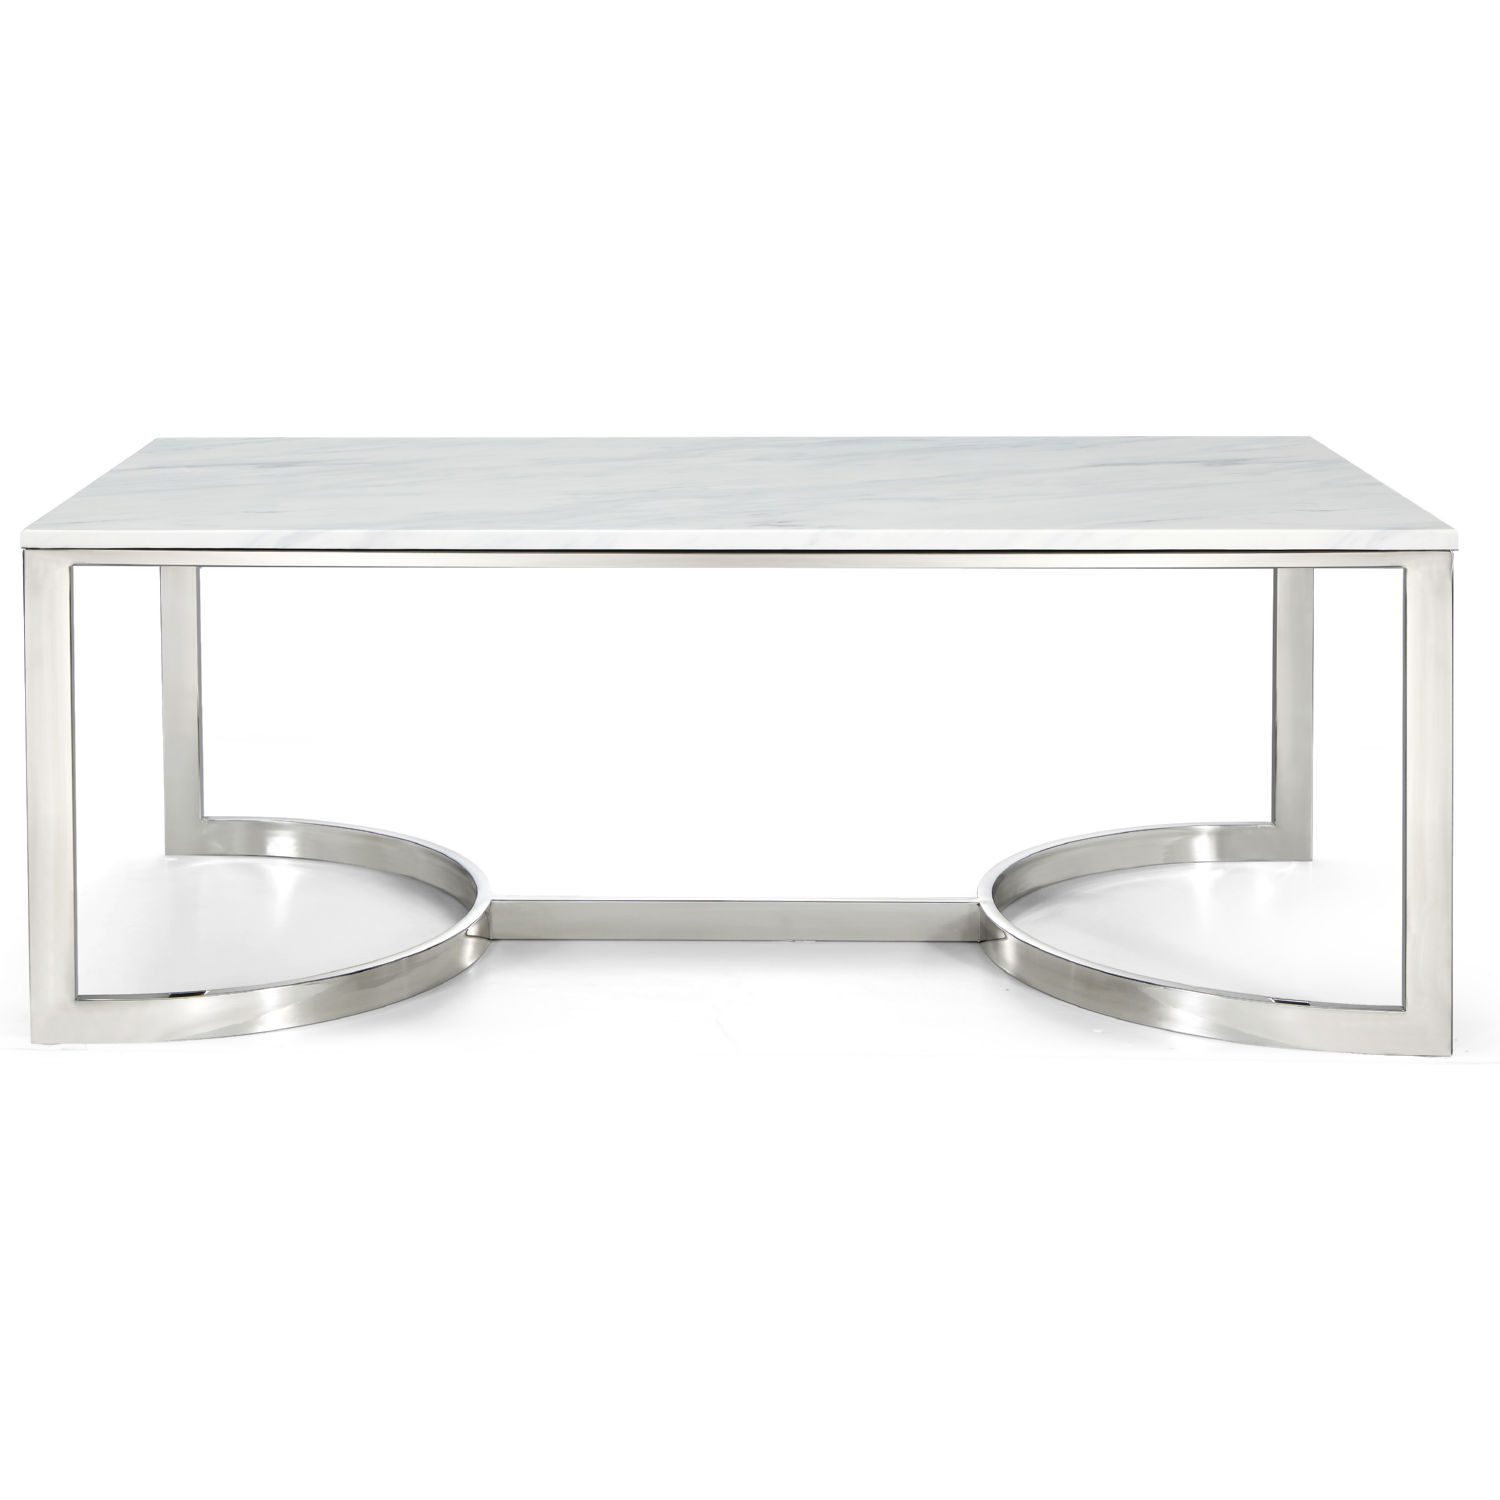 Meridian 245-C Copley Coffee Table In Chrome W/ Marble Top